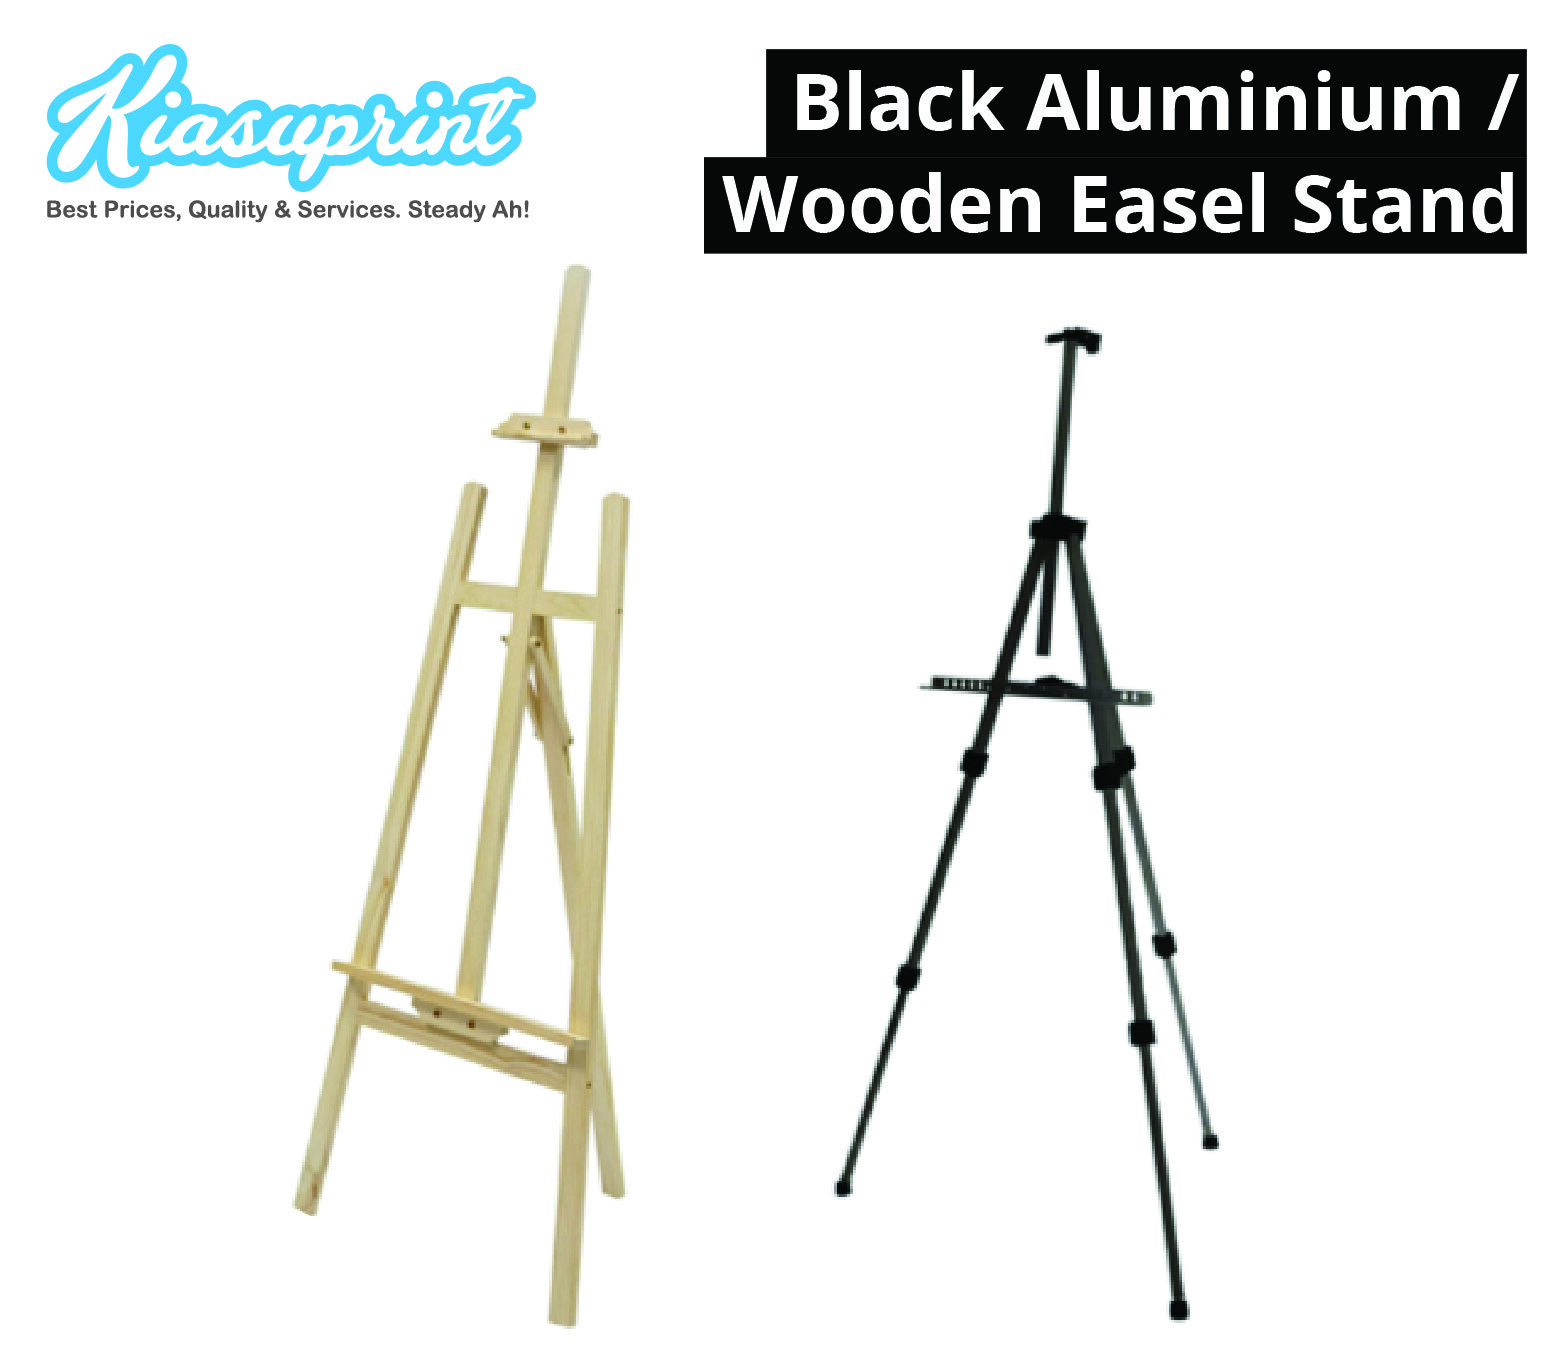 Black Aluminium / Wooden Easel Stand